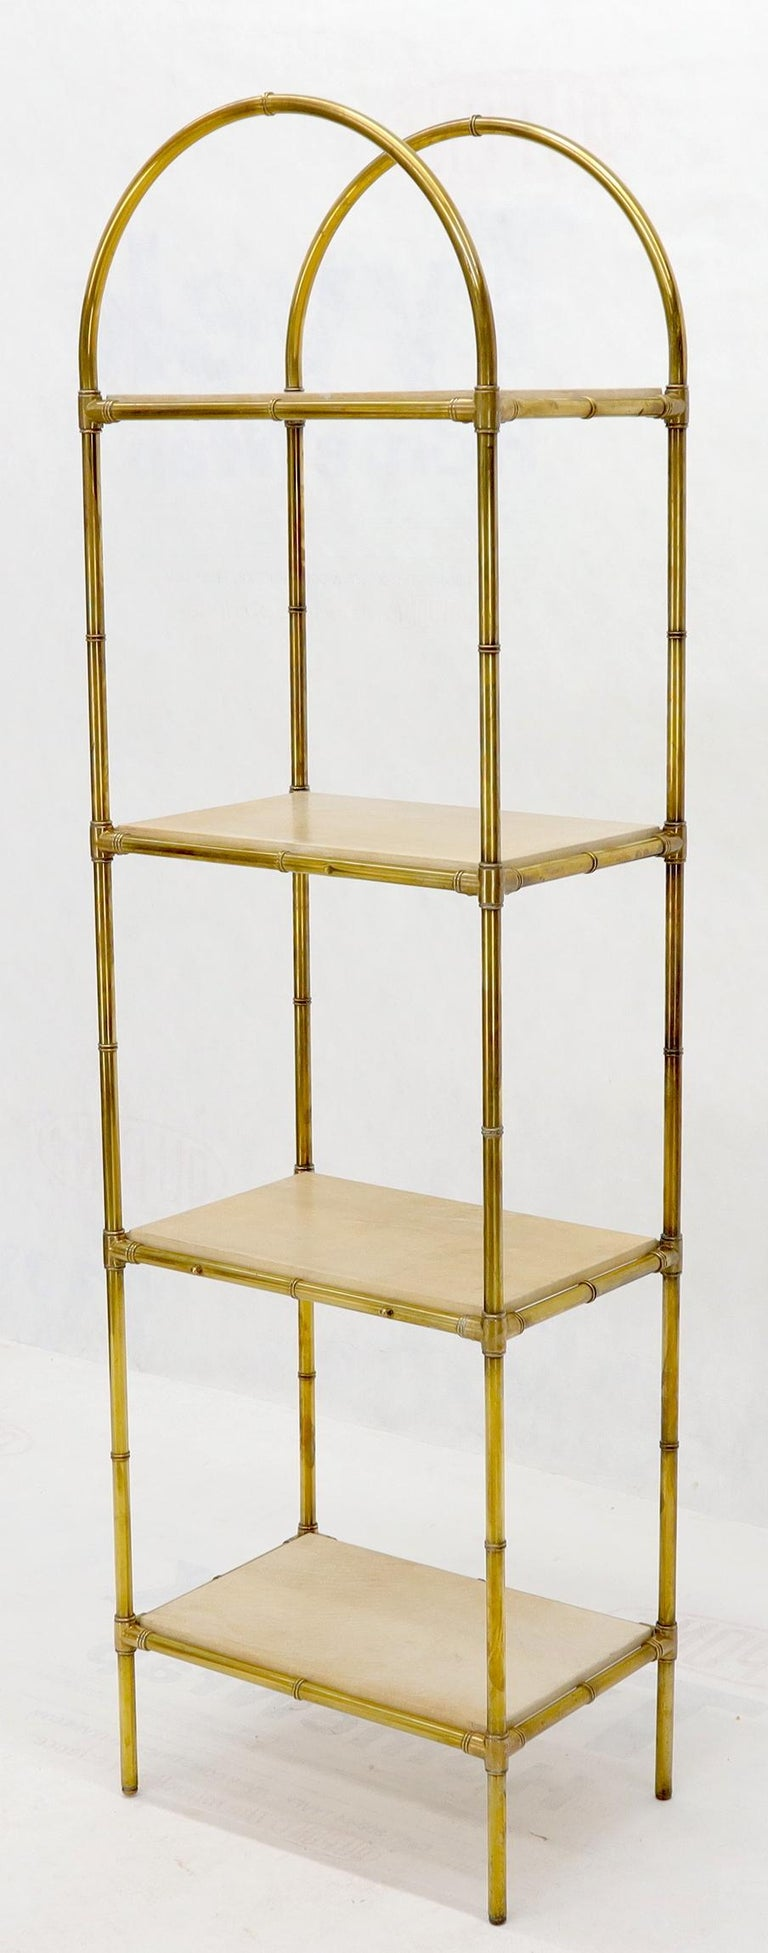 Pair Solid Brass Faux Bamboo Arch Shape Top Goat Skin Parchment Shelves Etageres In Excellent Condition For Sale In Blairstown, NJ